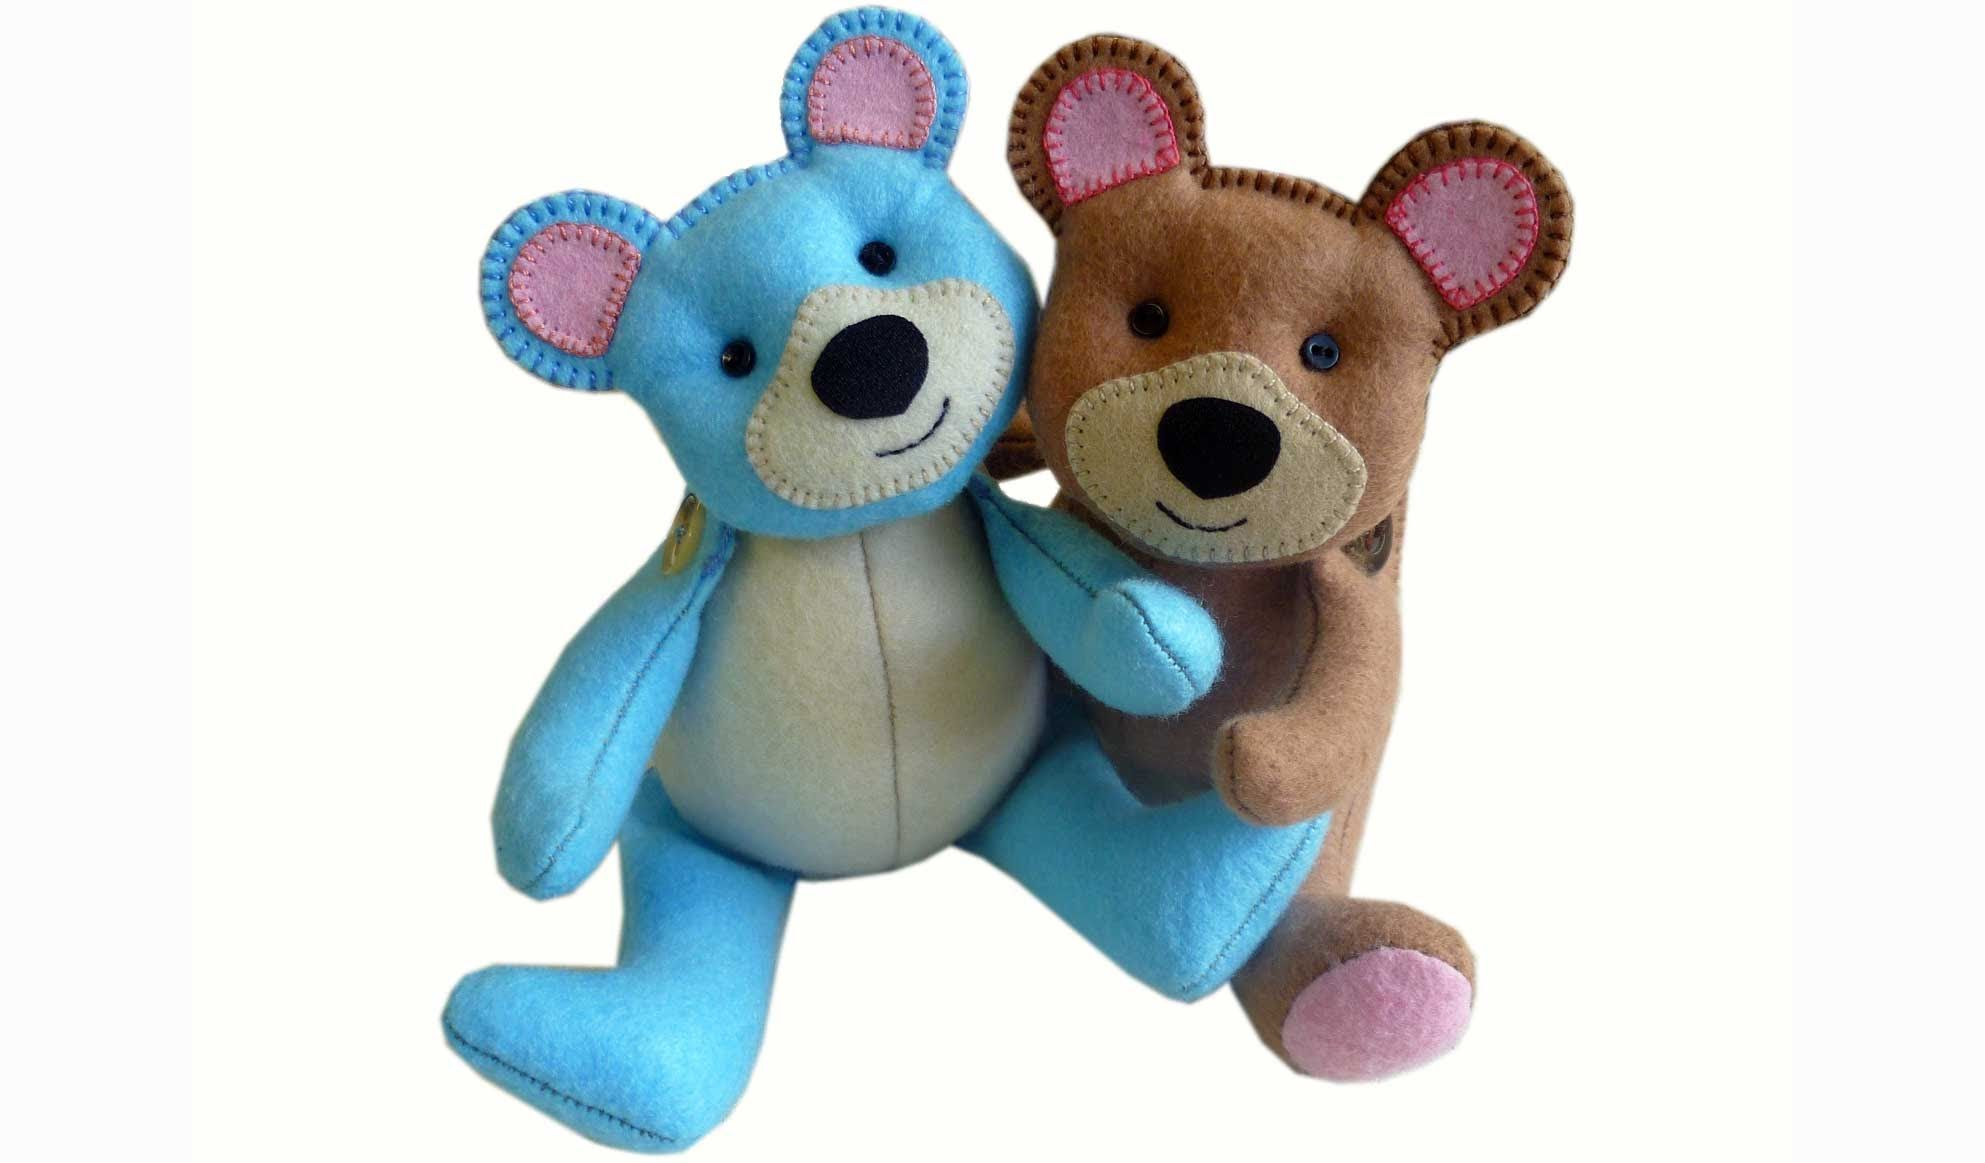 How to make a teddy bear - DOWNLOAD FREE PATTERN HERE http ...